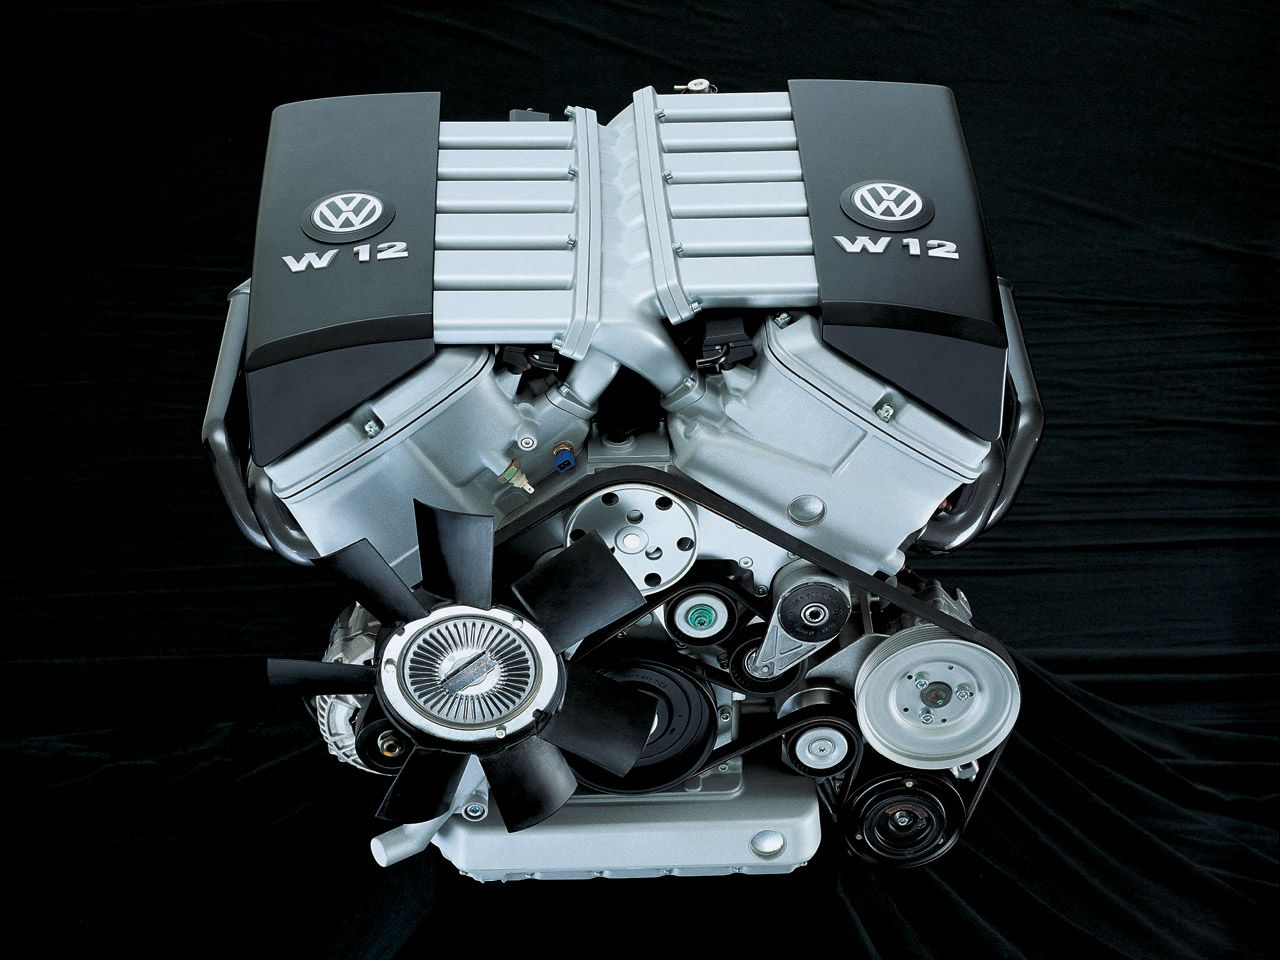 A herculean machine from volkswagen engines division